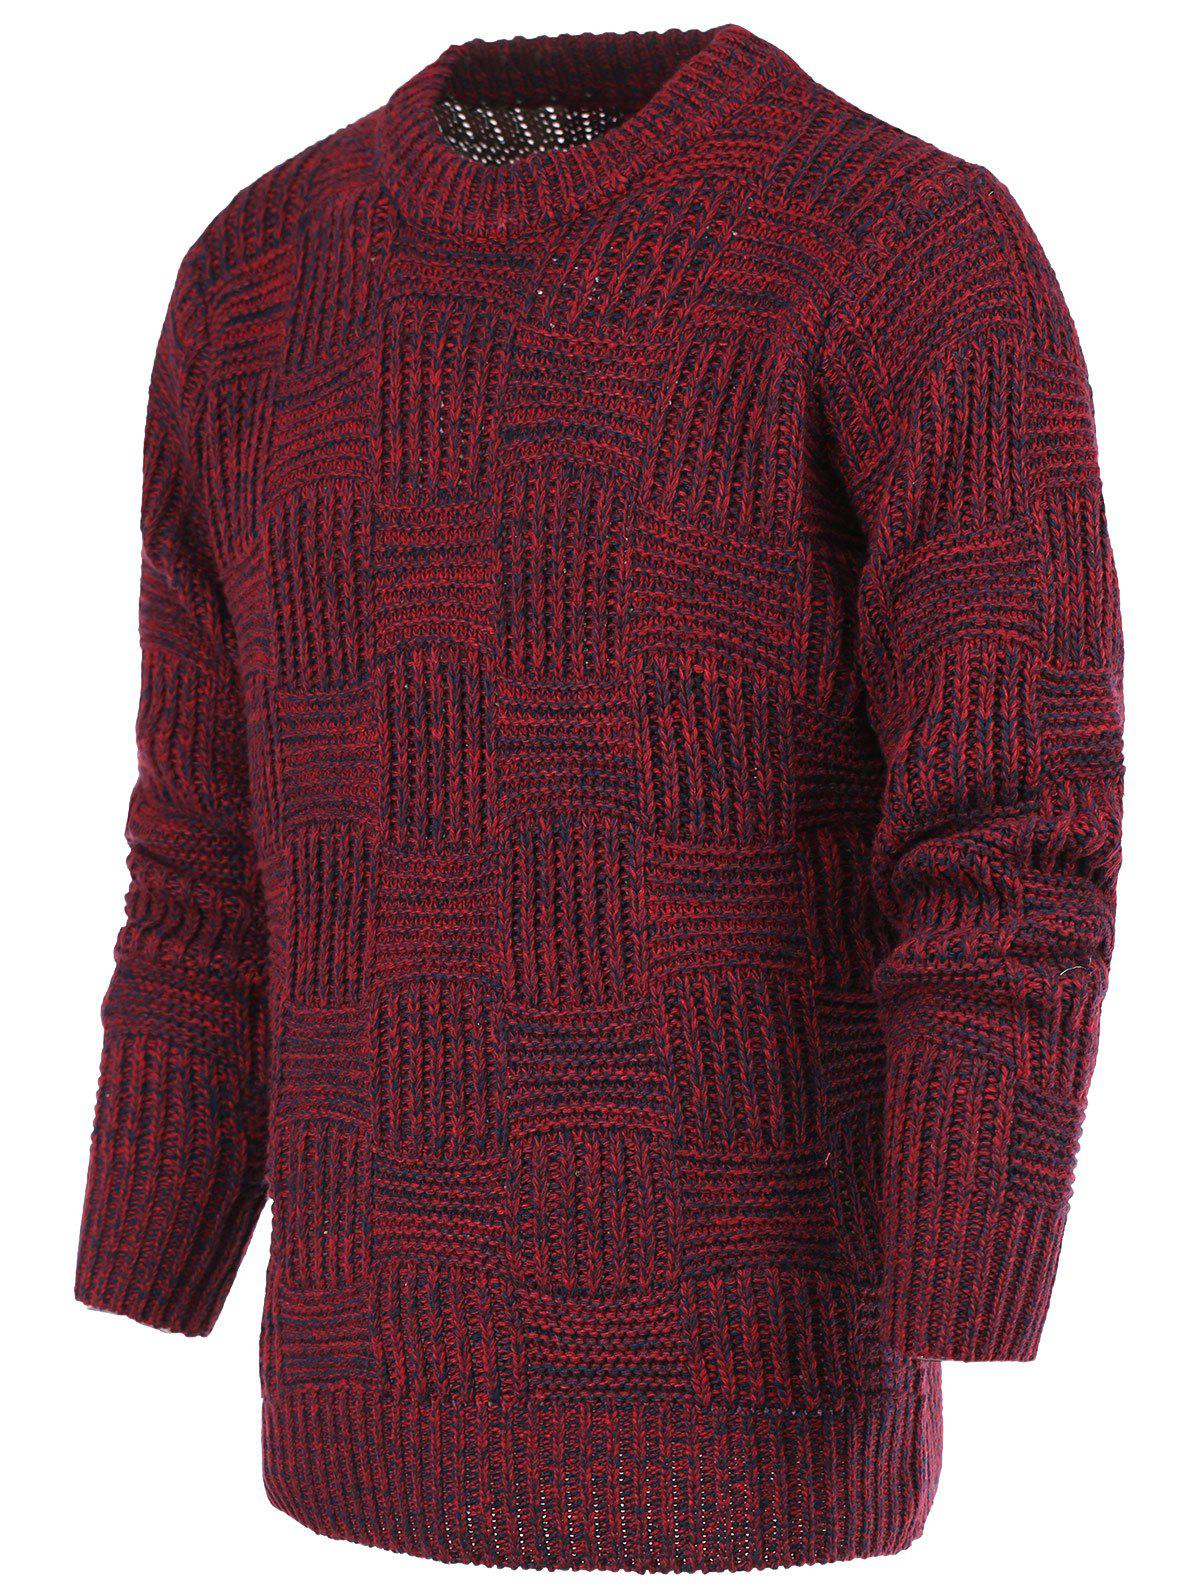 Ribbed Plaid Pattern Crew Neck Long Sleeve Men's Sweater - RED XL